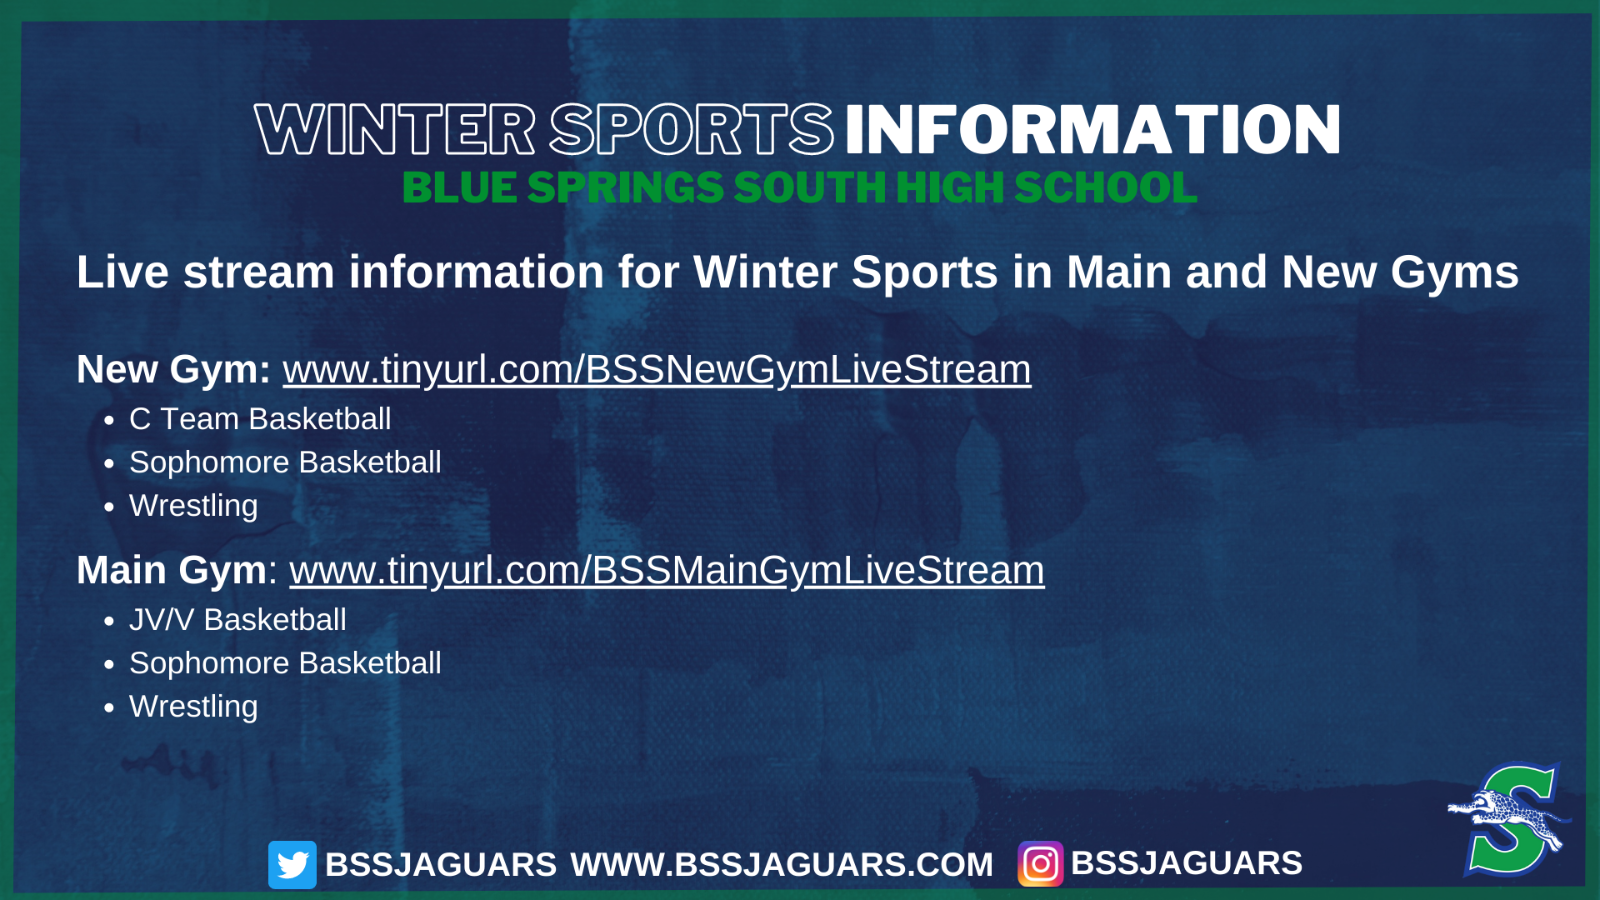 Live Stream Information for Winter Sports in Main and New Gyms